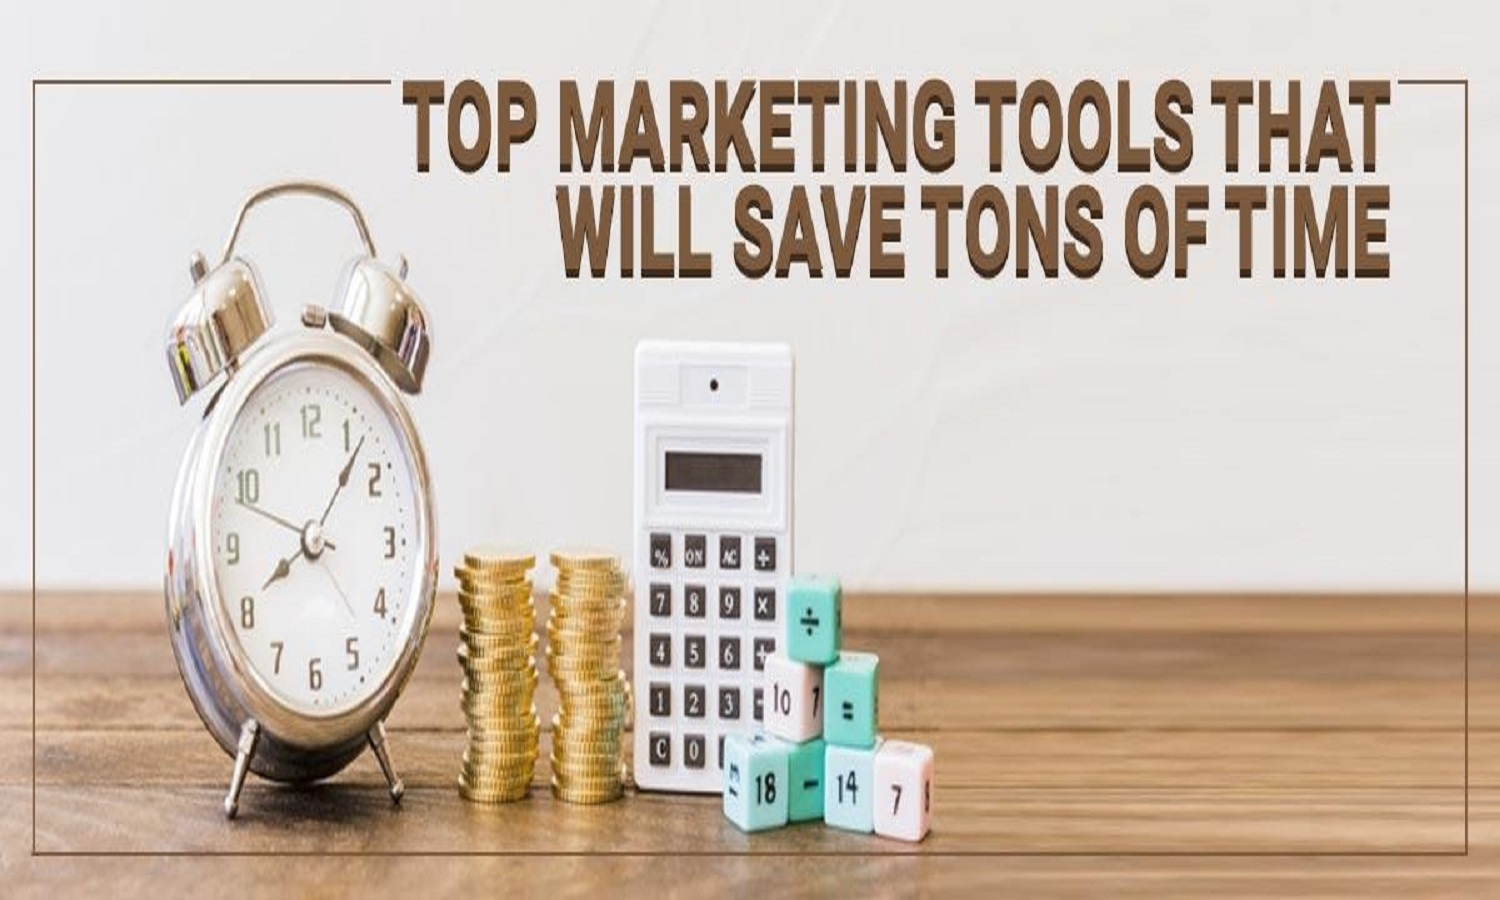 List of Top 15+ Marketing Tools That Will Save Tons Of Time